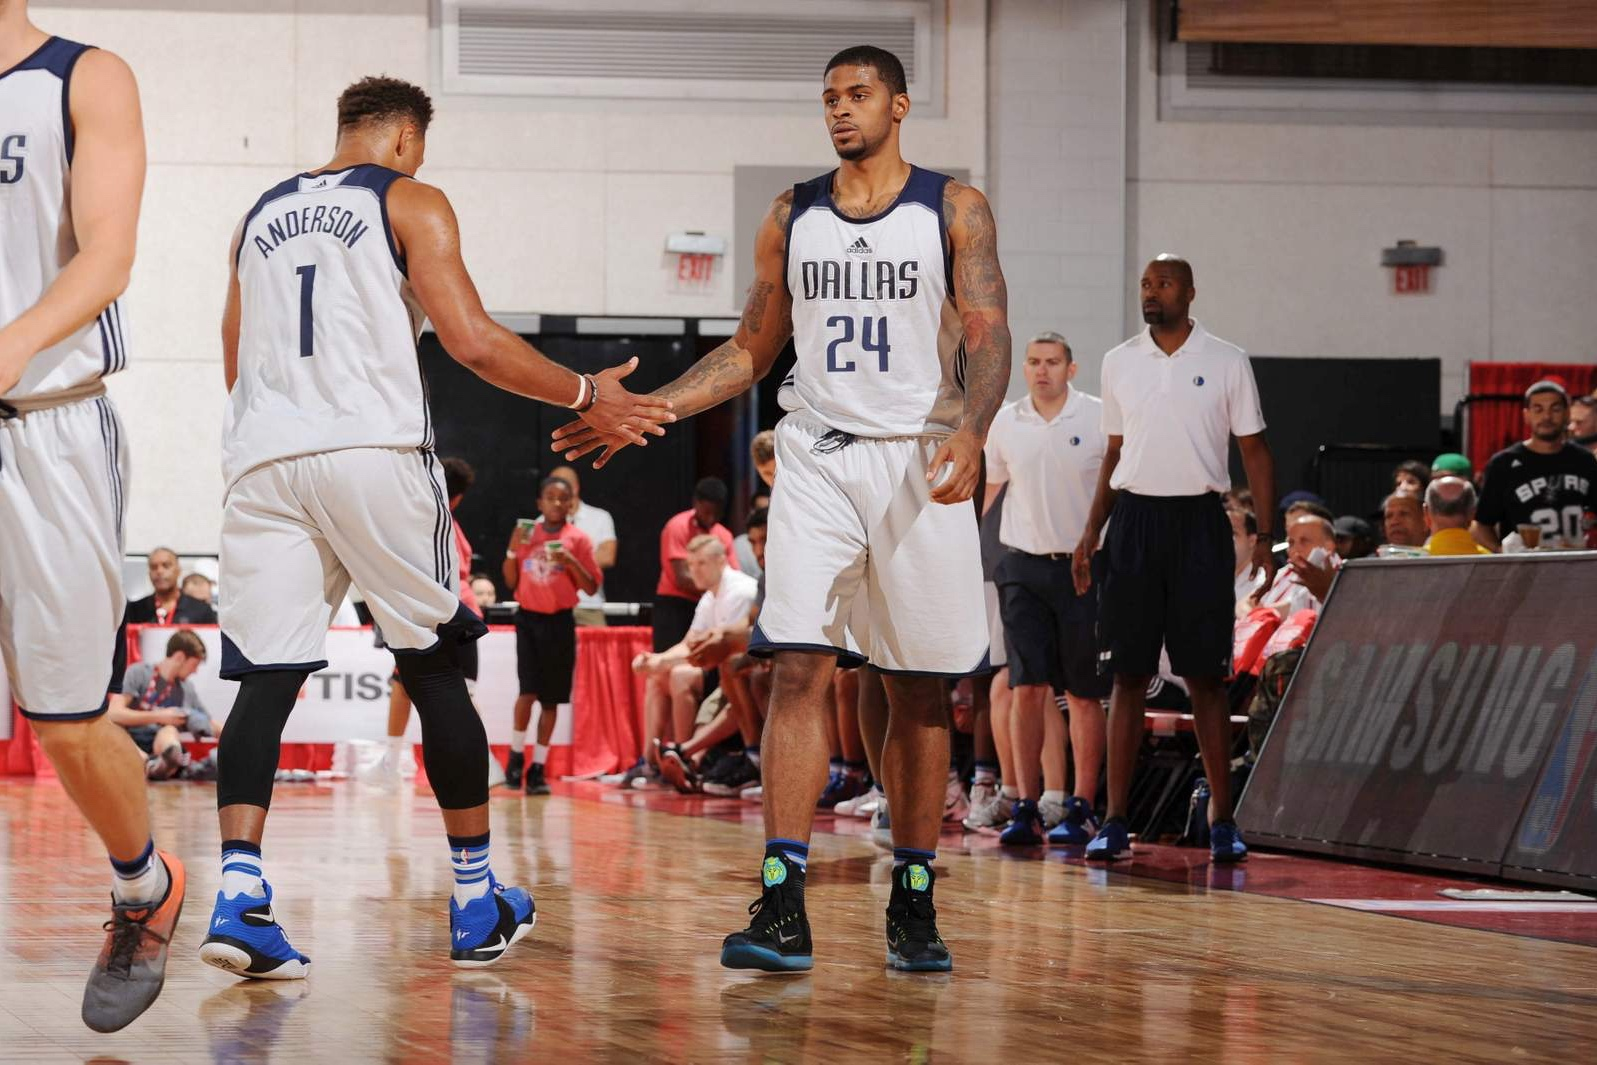 Mavs Summer League: Who Showed Up, Who Let Down, & Who Gets a 2nd Chance?